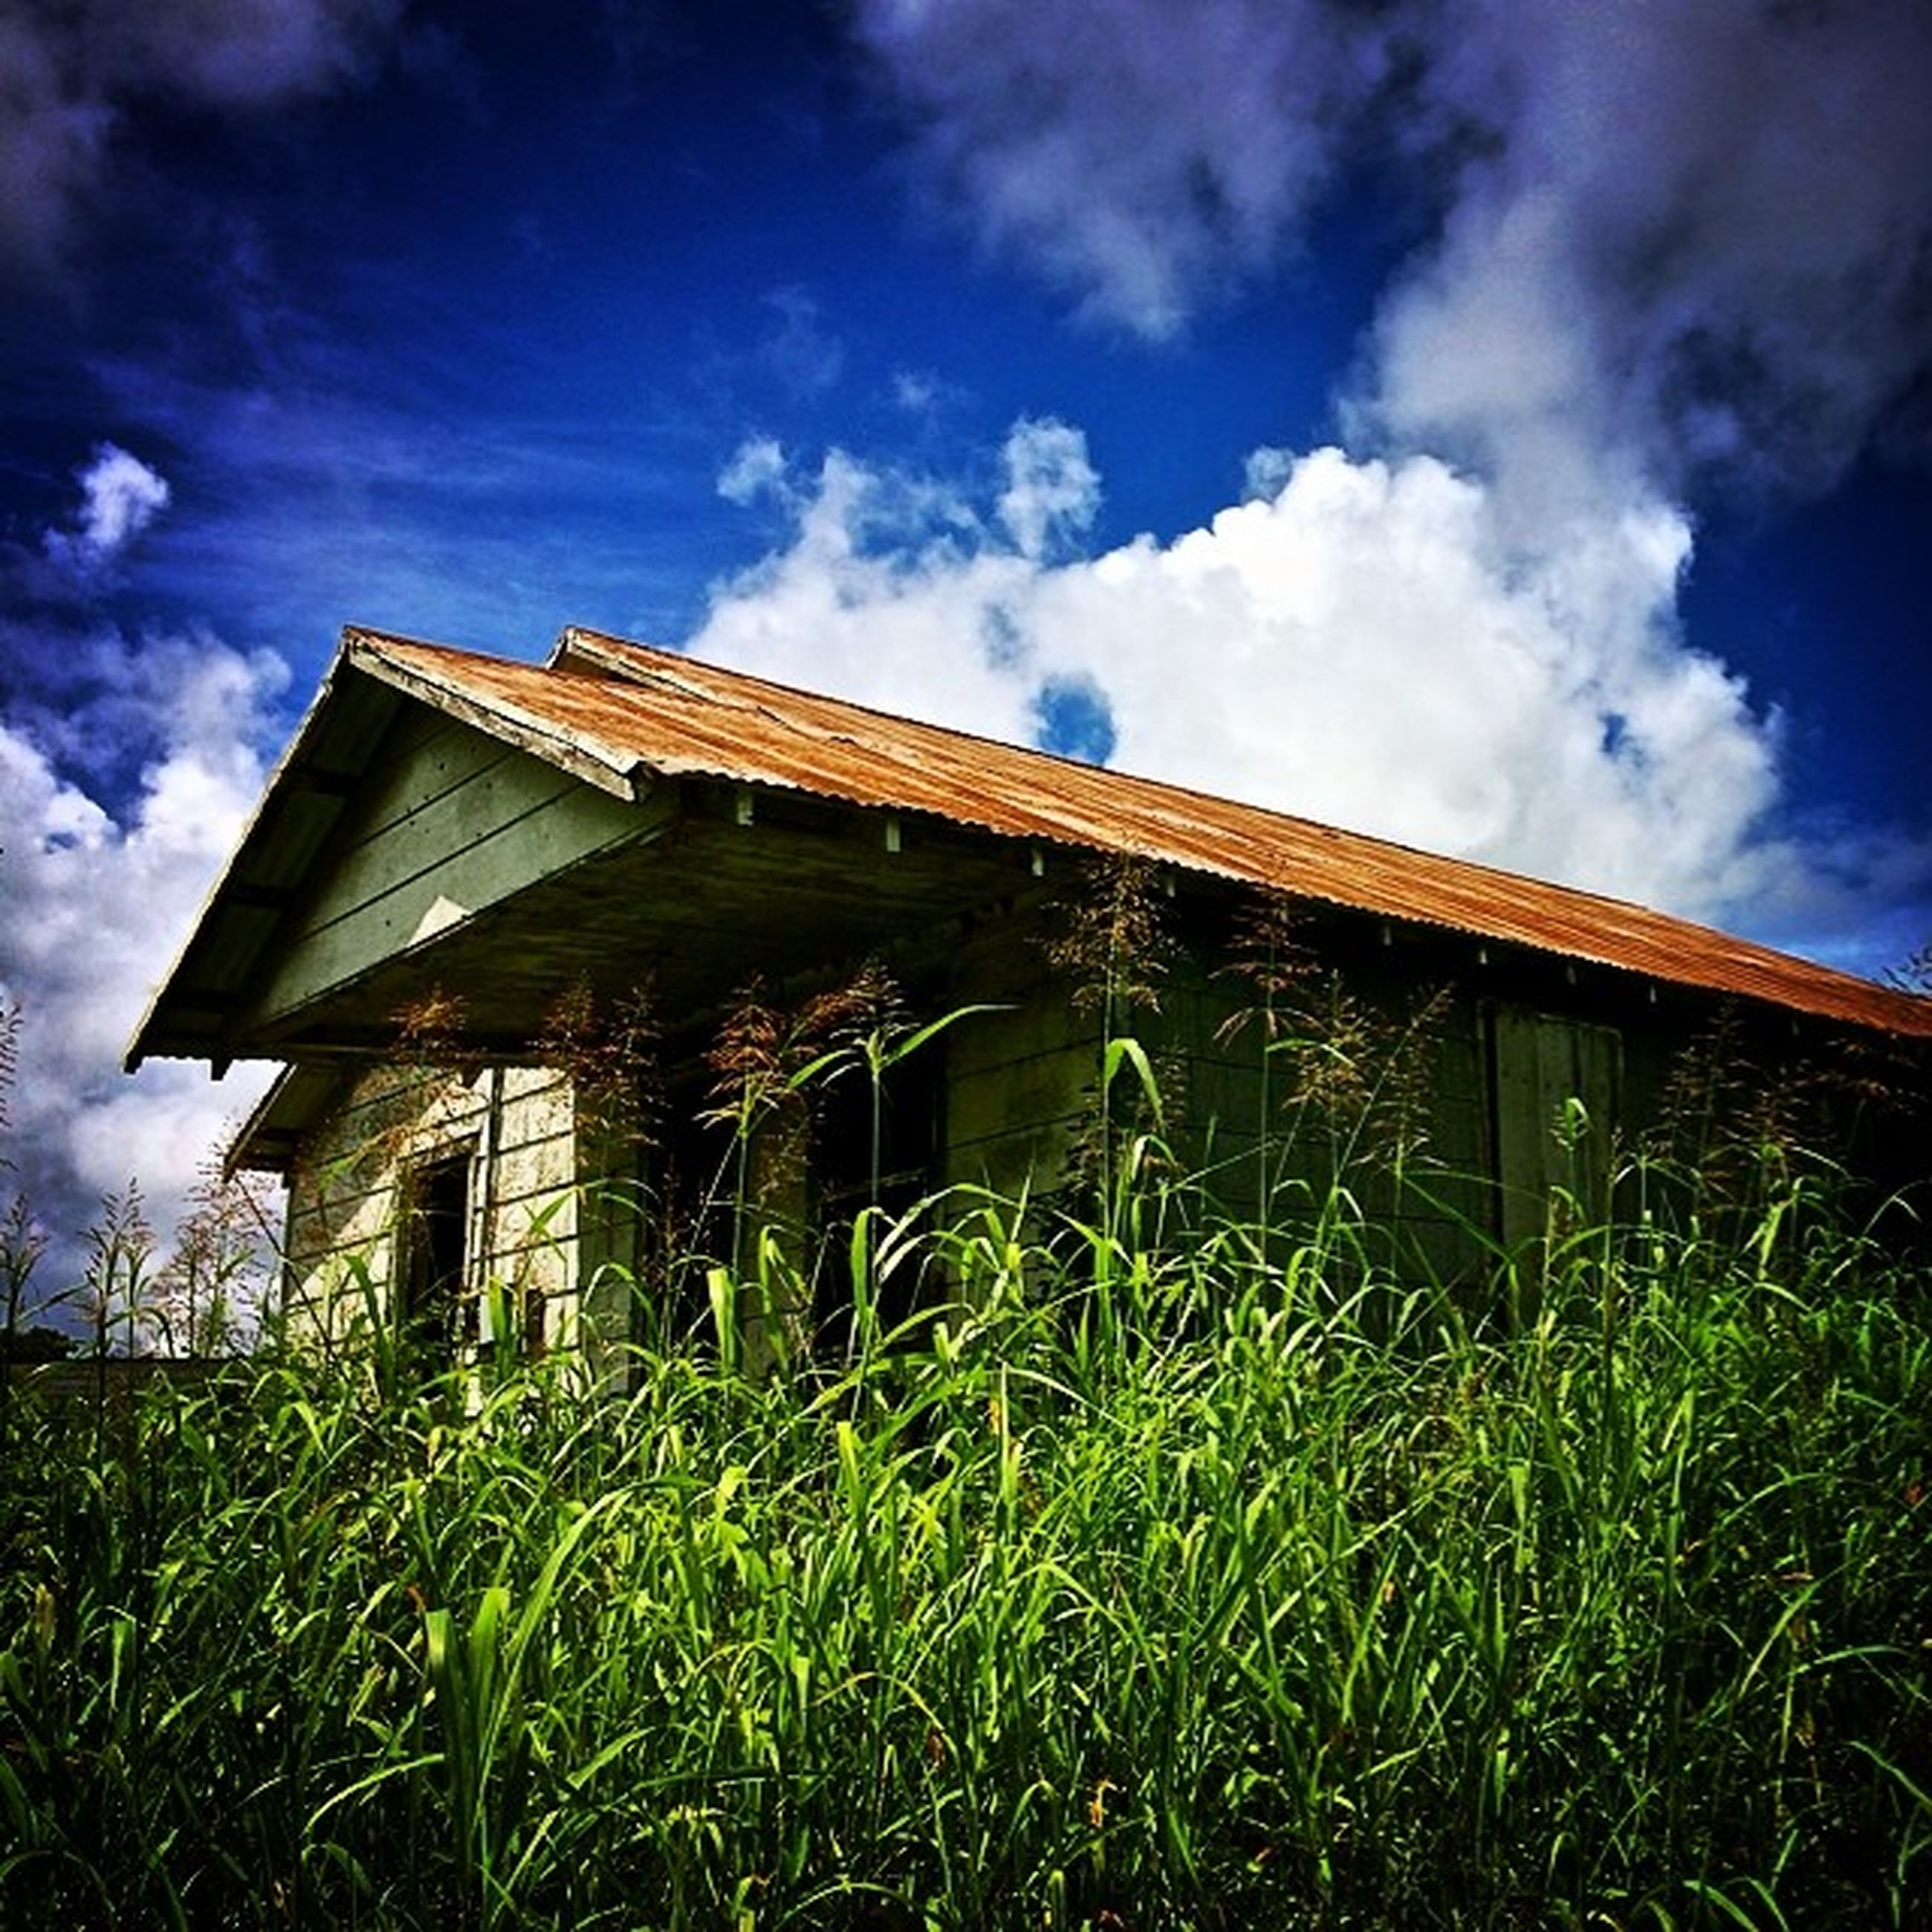 grass, architecture, building exterior, built structure, sky, cloud - sky, field, grassy, house, cloud, plant, growth, green color, cloudy, nature, day, low angle view, outdoors, residential structure, blue